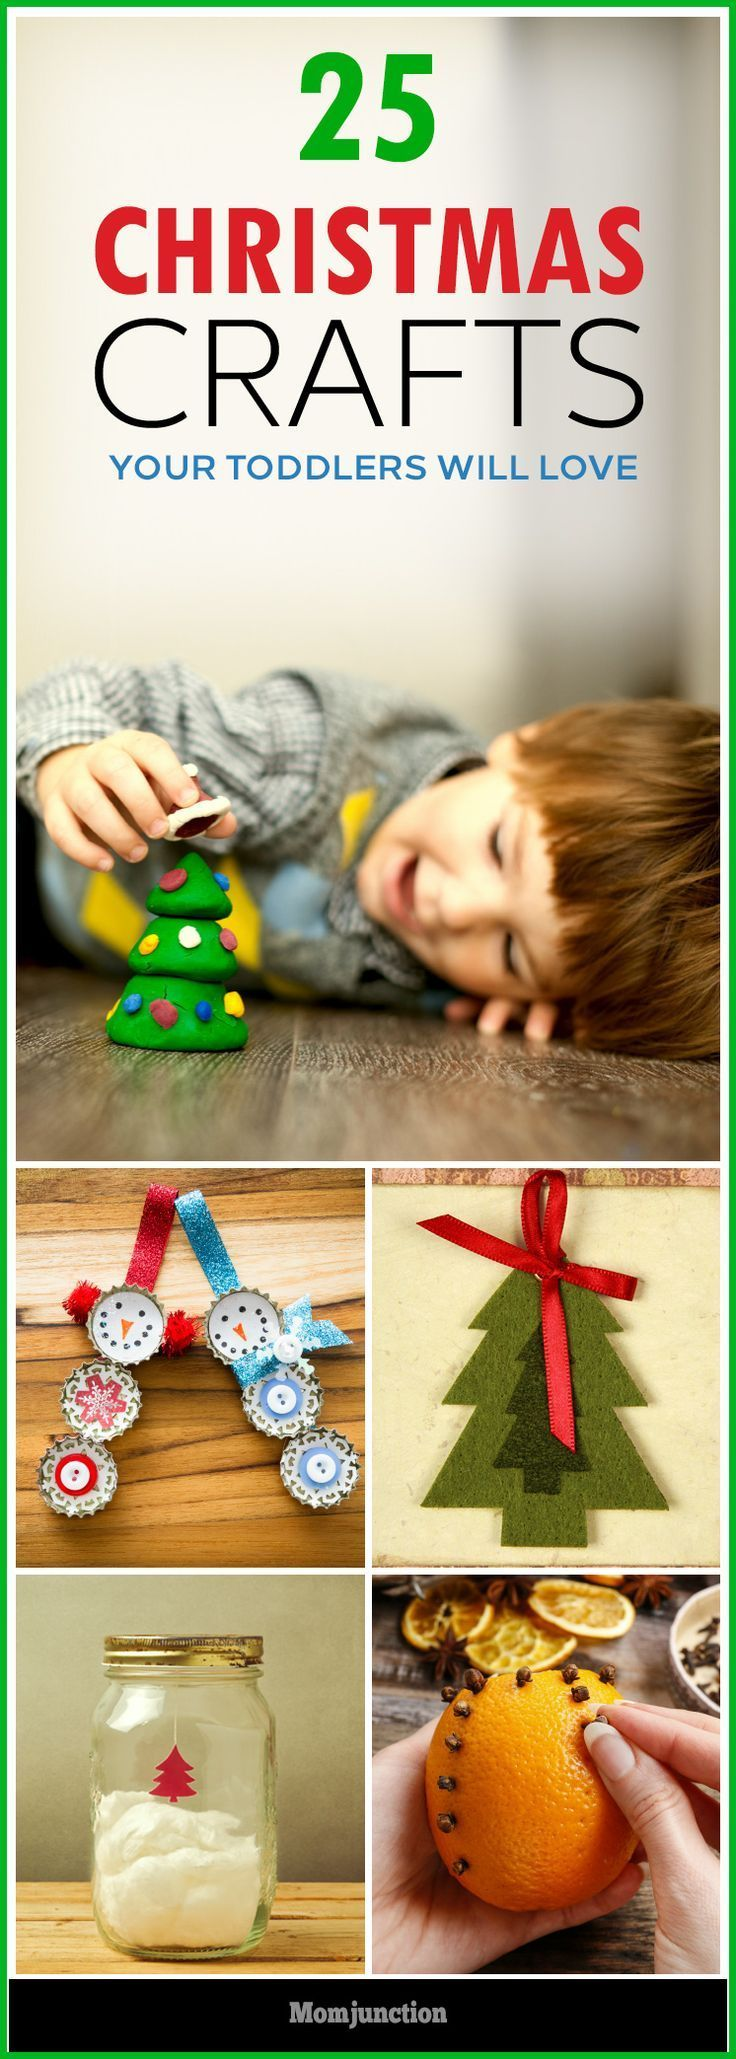 A great way to keep your toddlers entertained & busy for Christmas is by making some easy & fun Christmas crafts for toddlers at home. Check out some fun options.